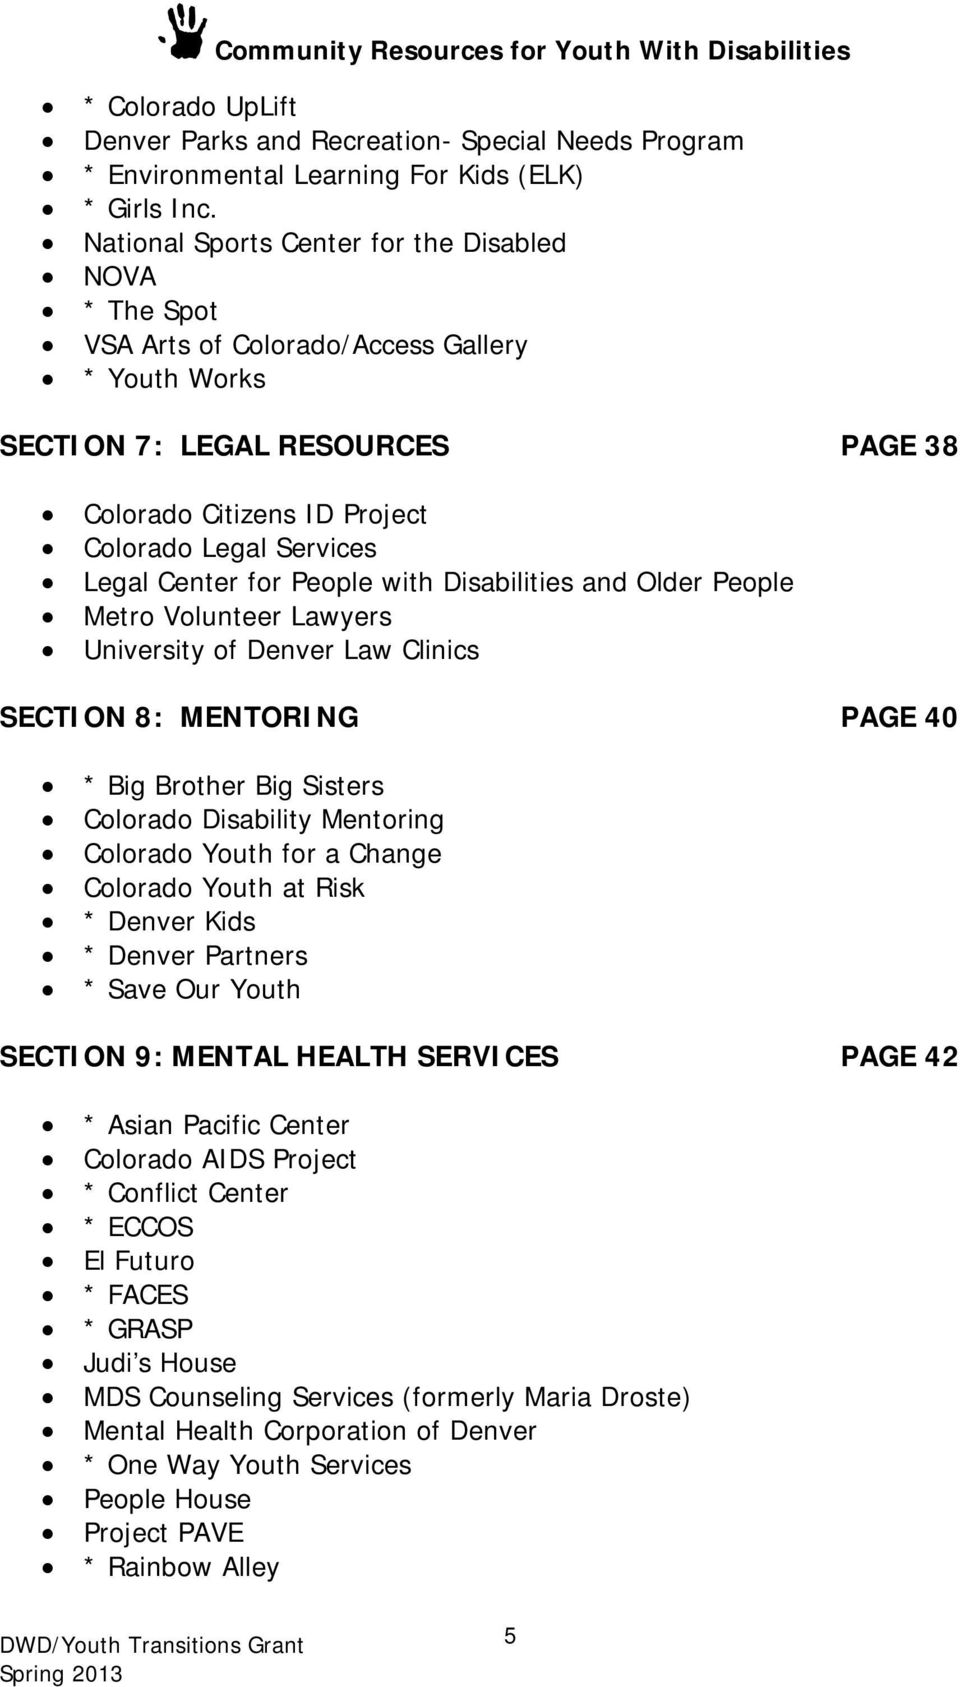 Denver Community Resources for Youth with Disabilities - PDF